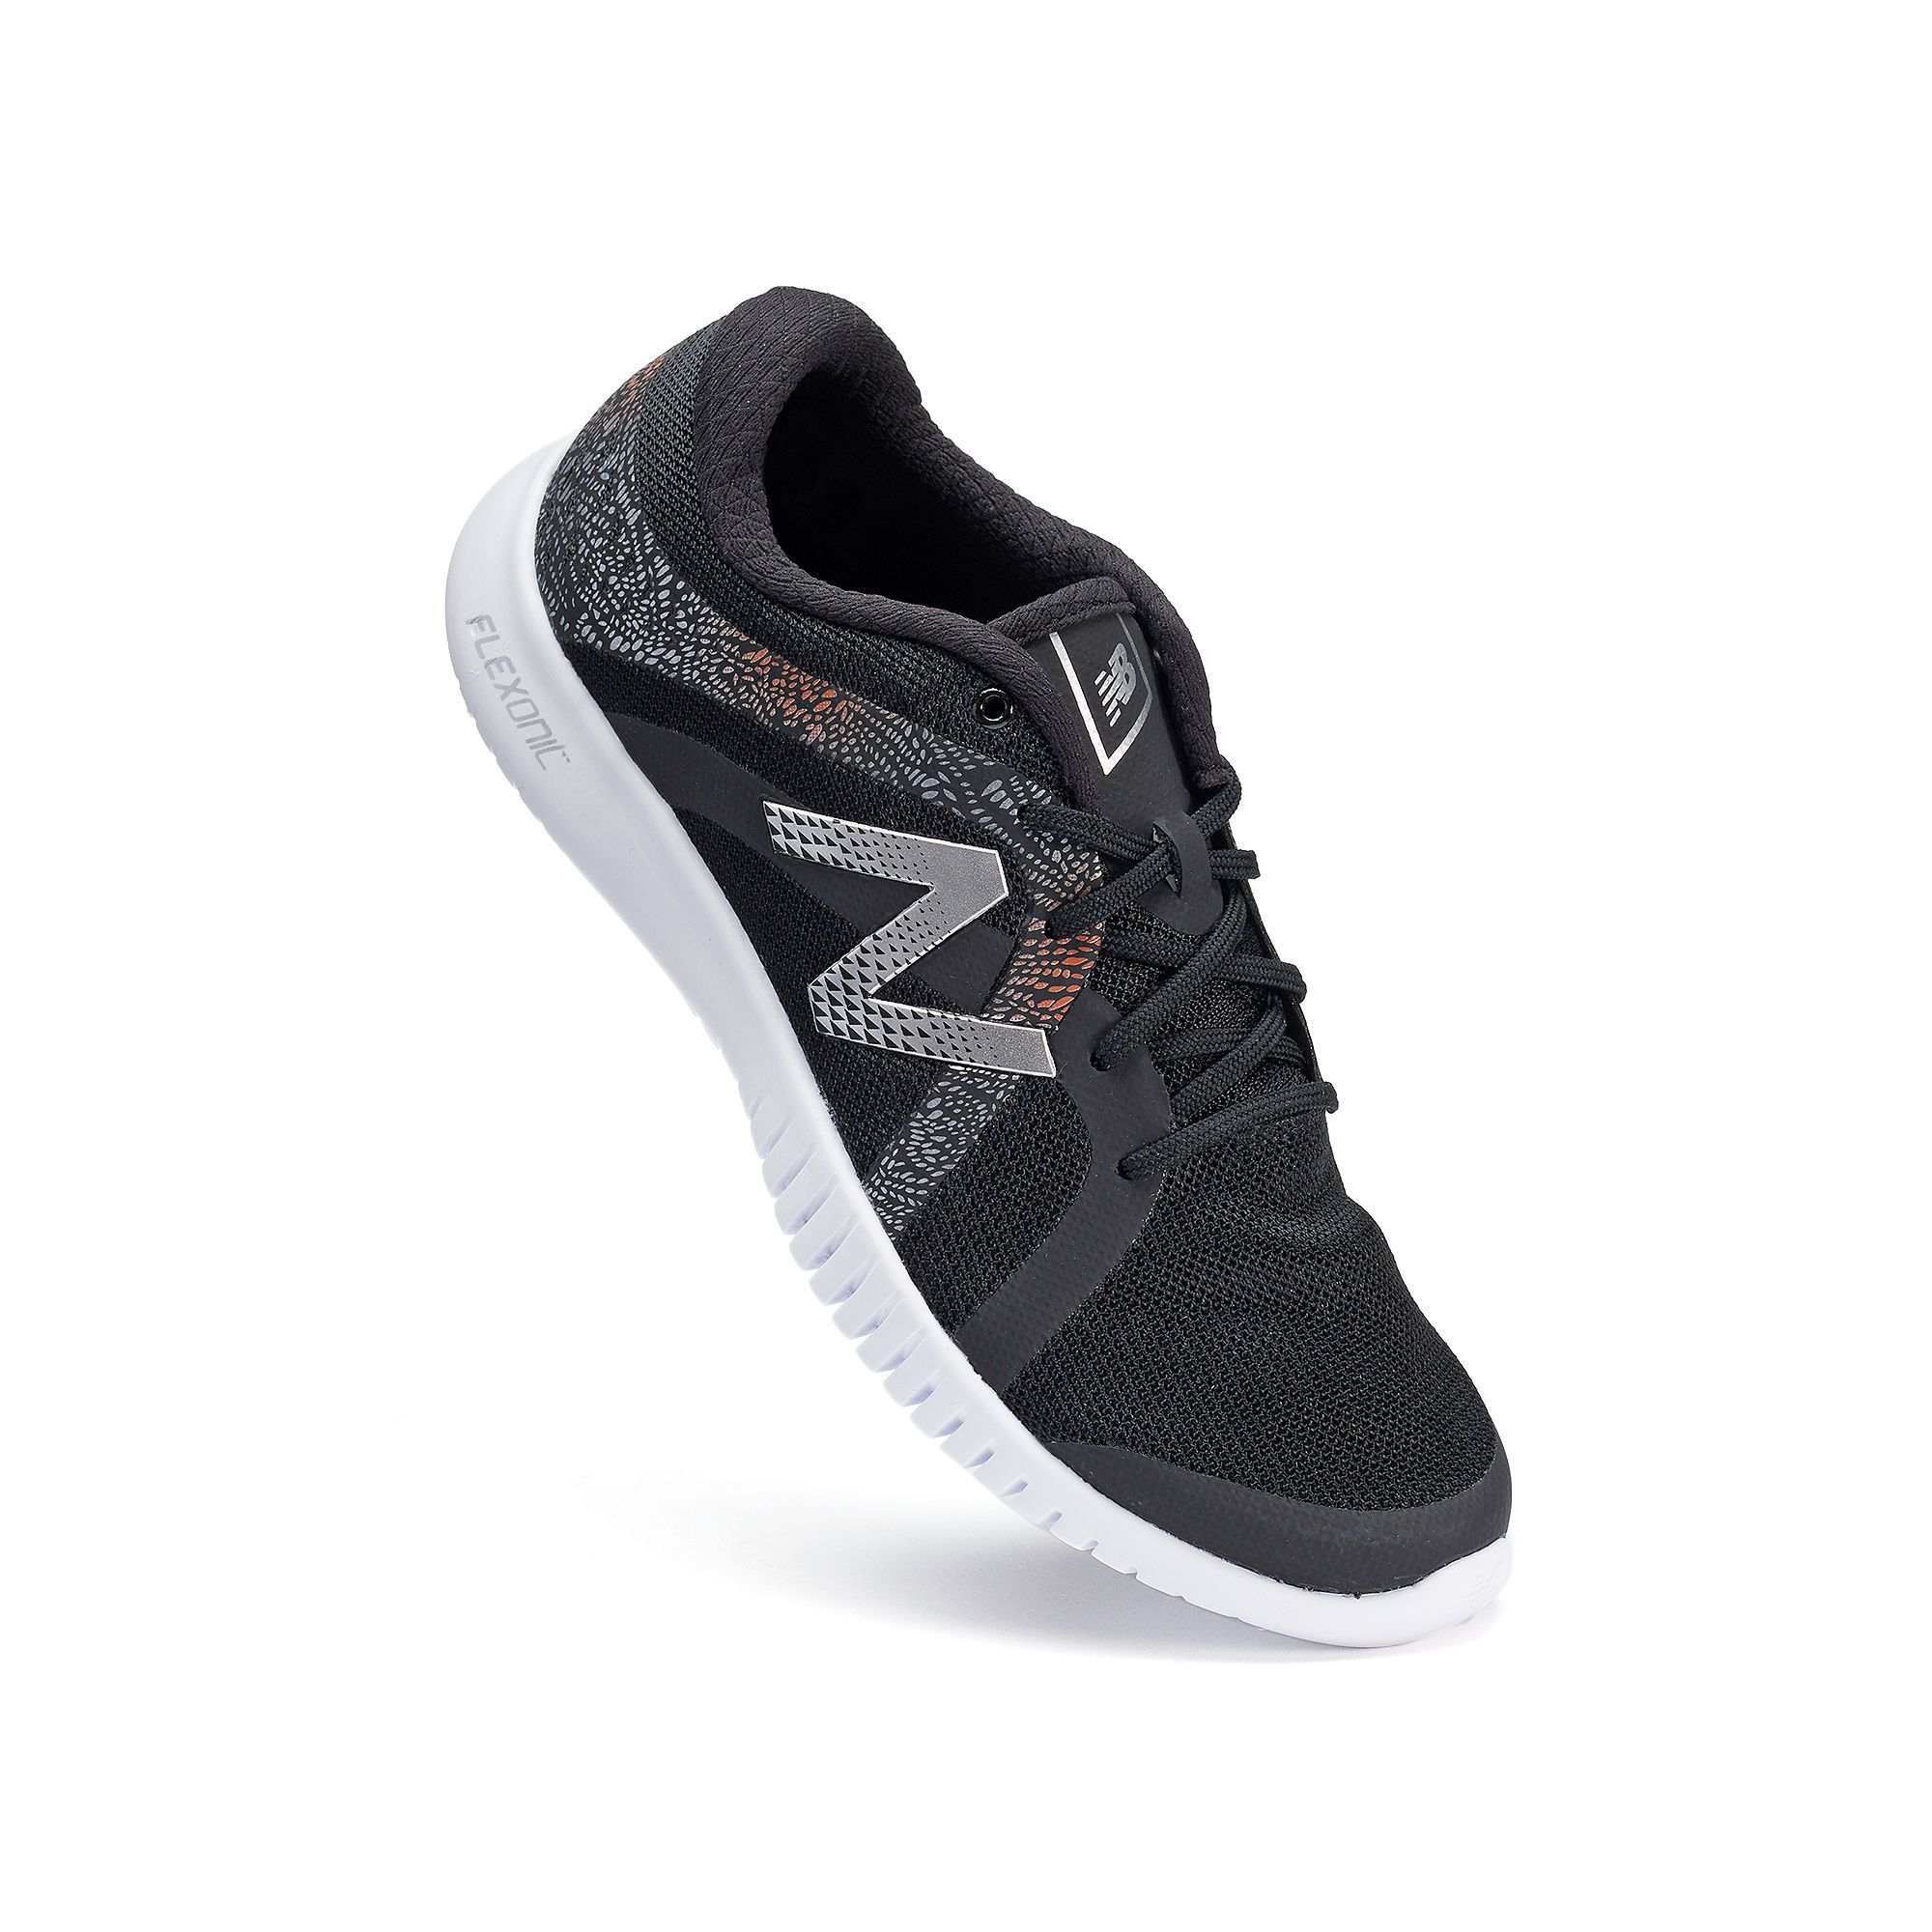 Comfort New Balance 615 Flexonic Womens CrossTraining Shoes Black